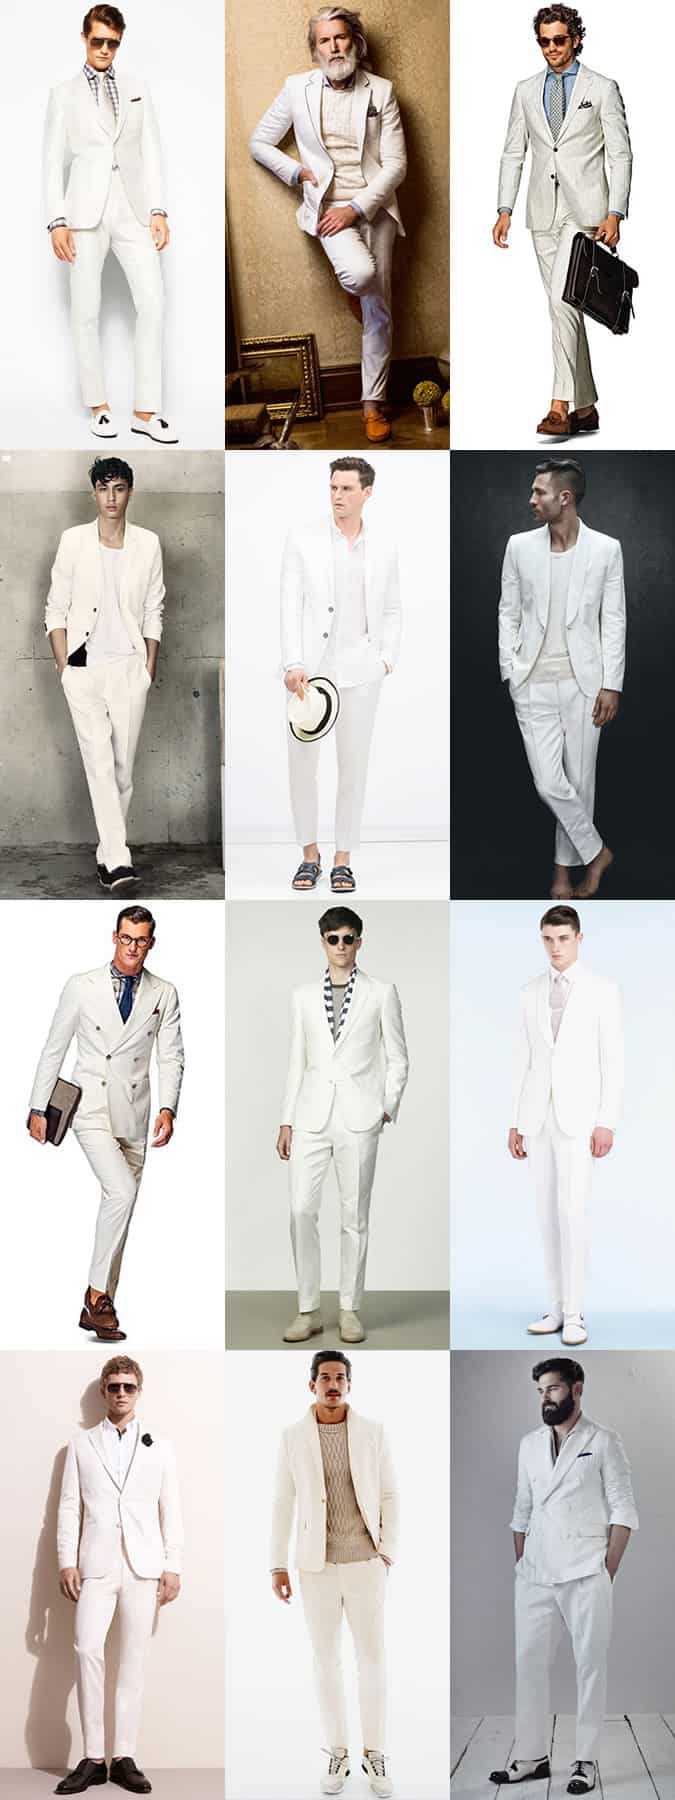 Men's White Suits Outfit Inspiration Lookbook